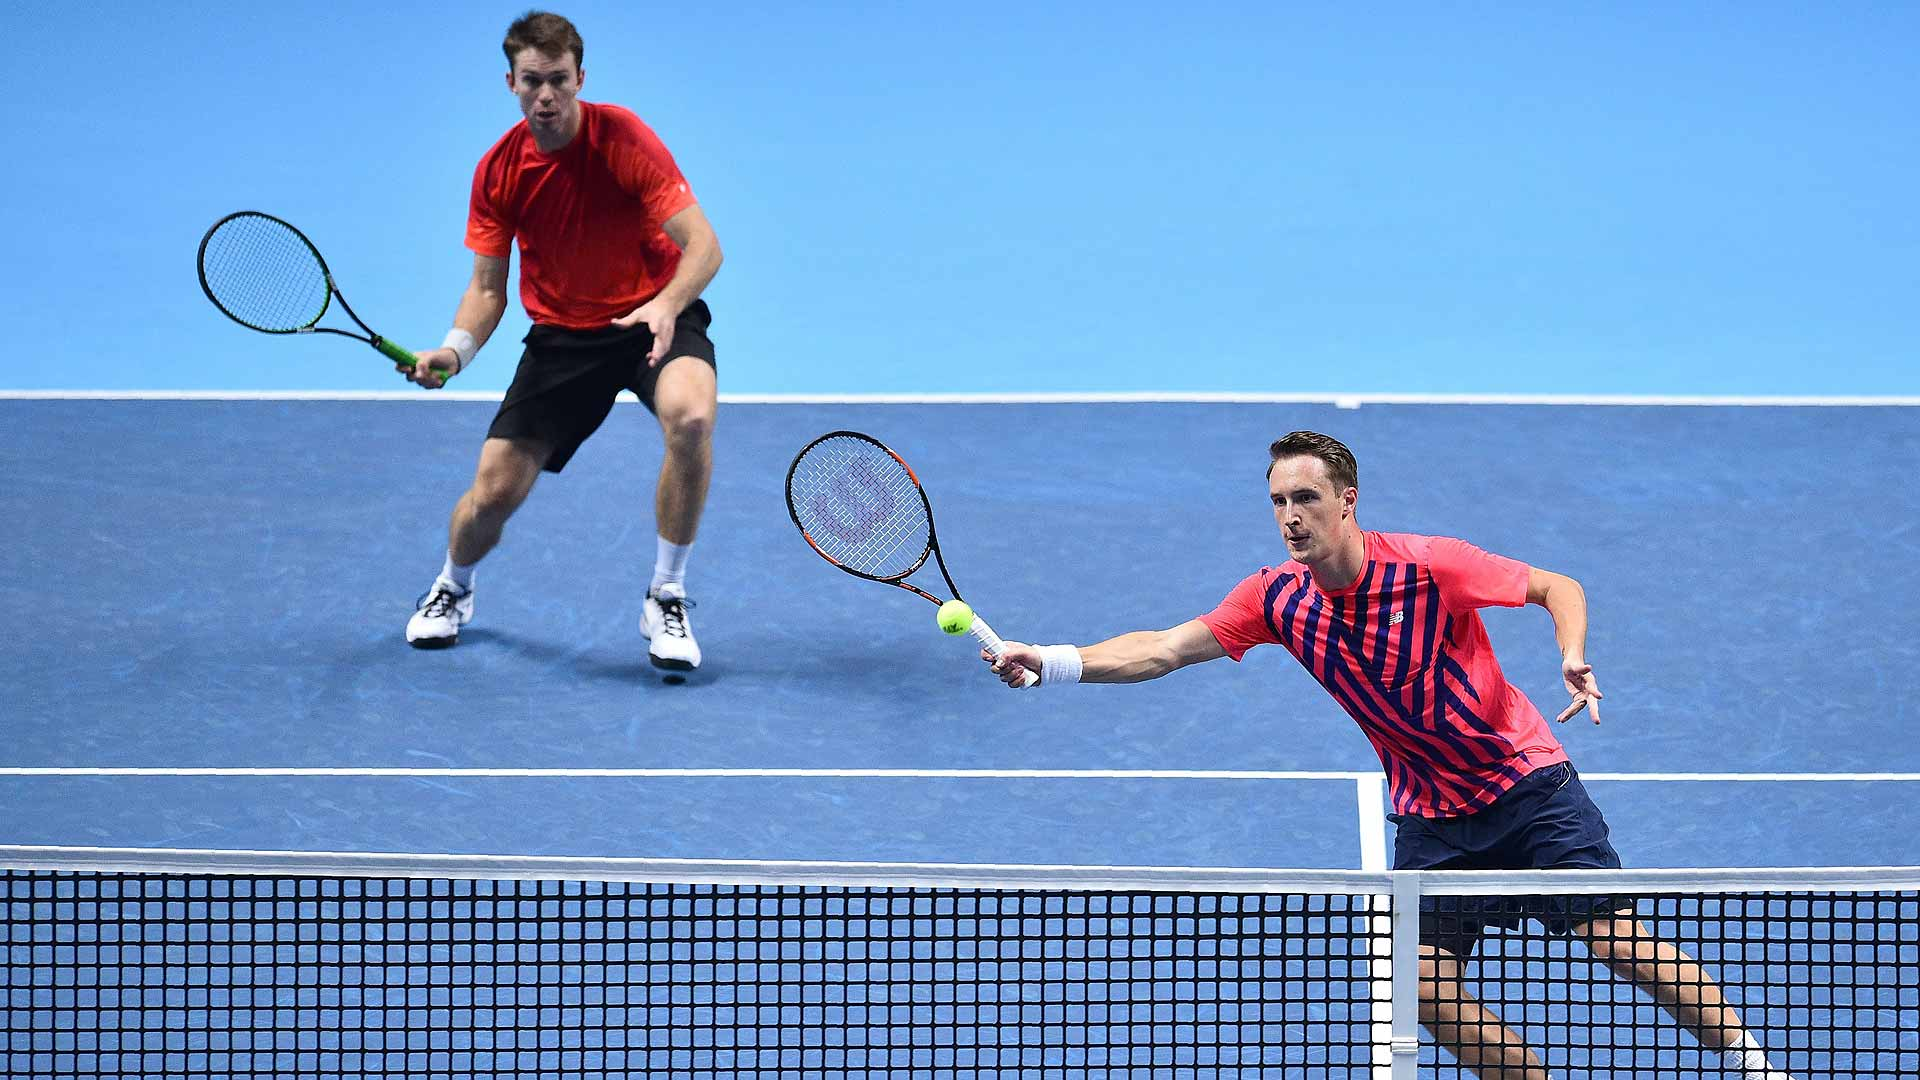 John Peers (L) and Henri Kontinen prevail on Monday at the Barclays ATP World Tour Finals.